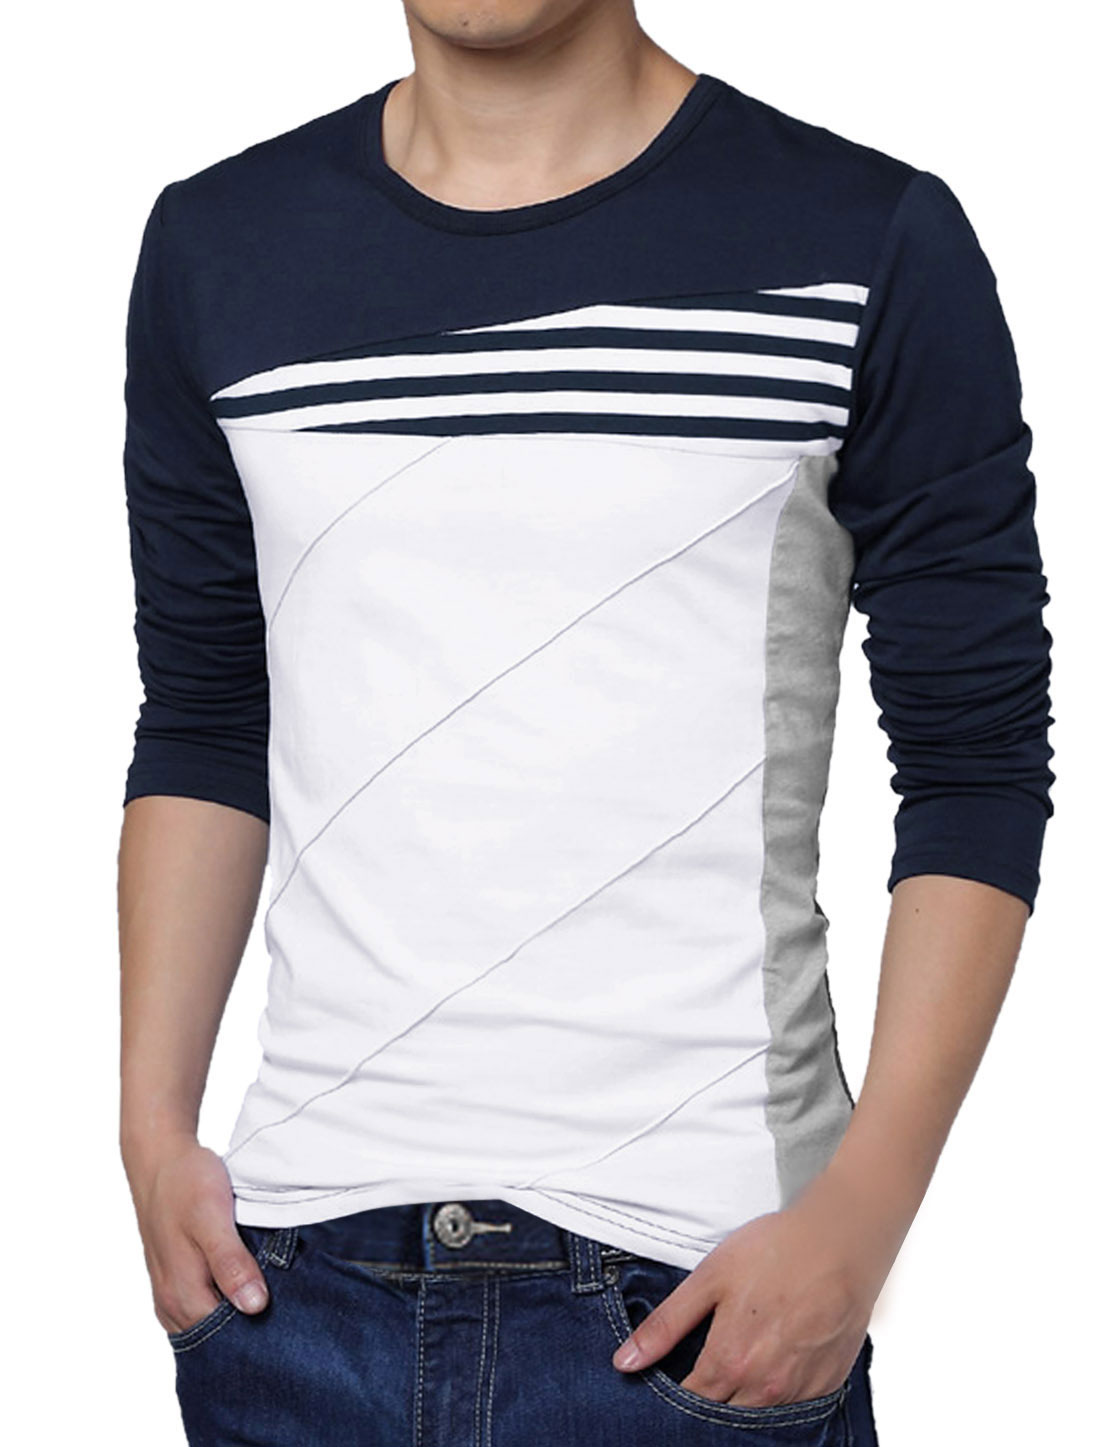 Men Long Sleeves Color Block Stitching Stripes Tee Shirt Blue White M